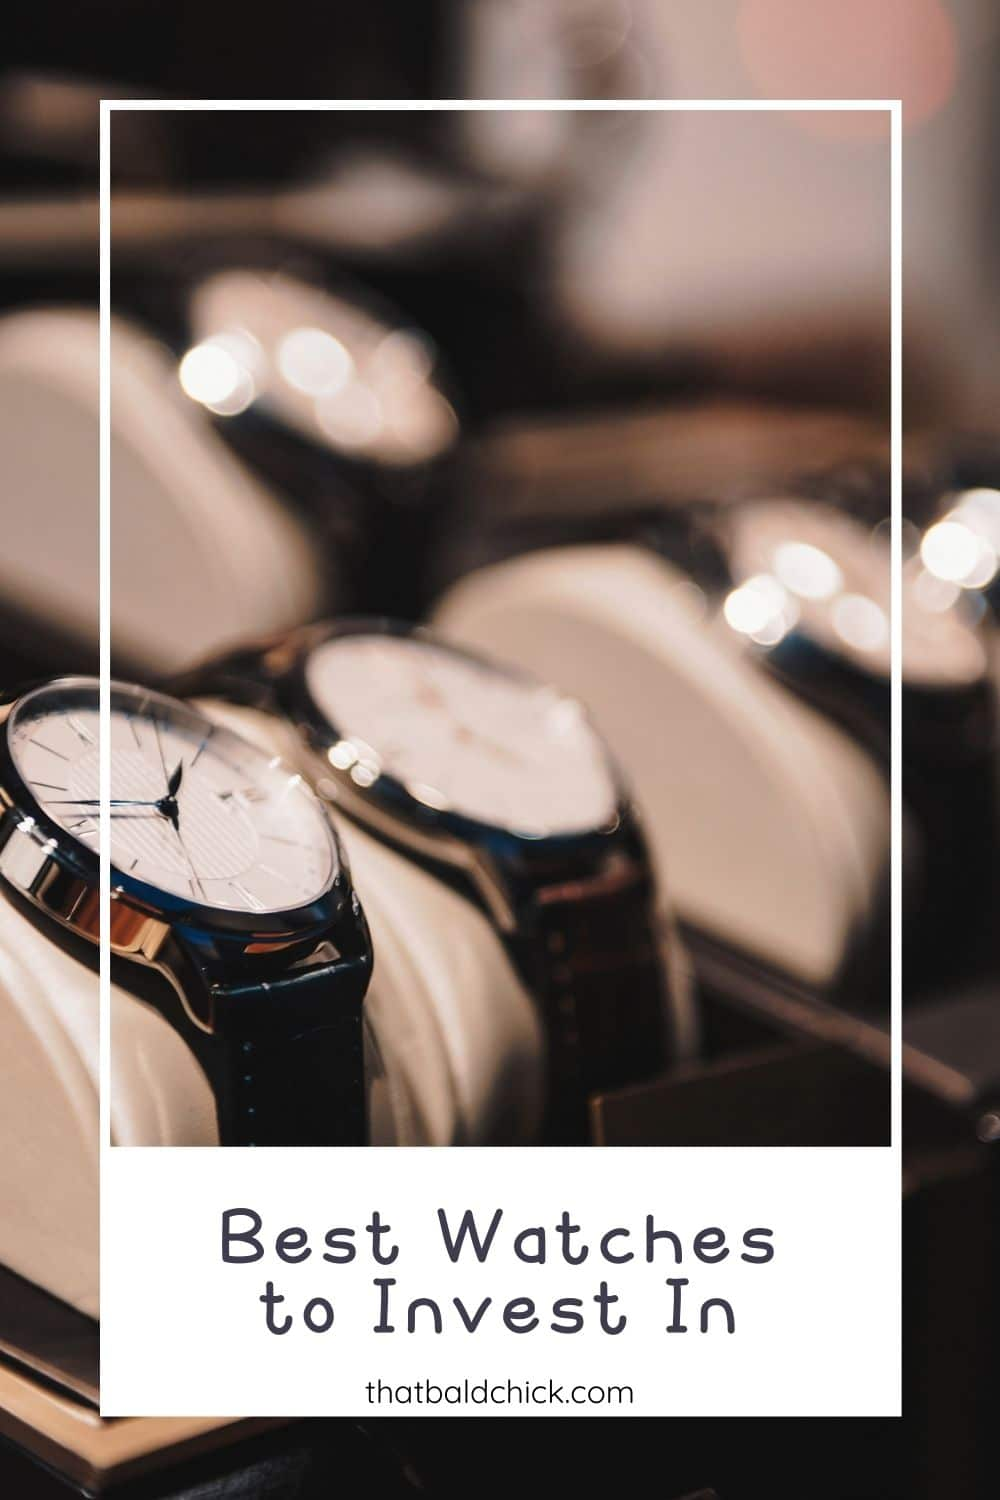 Best Watches to Invest In